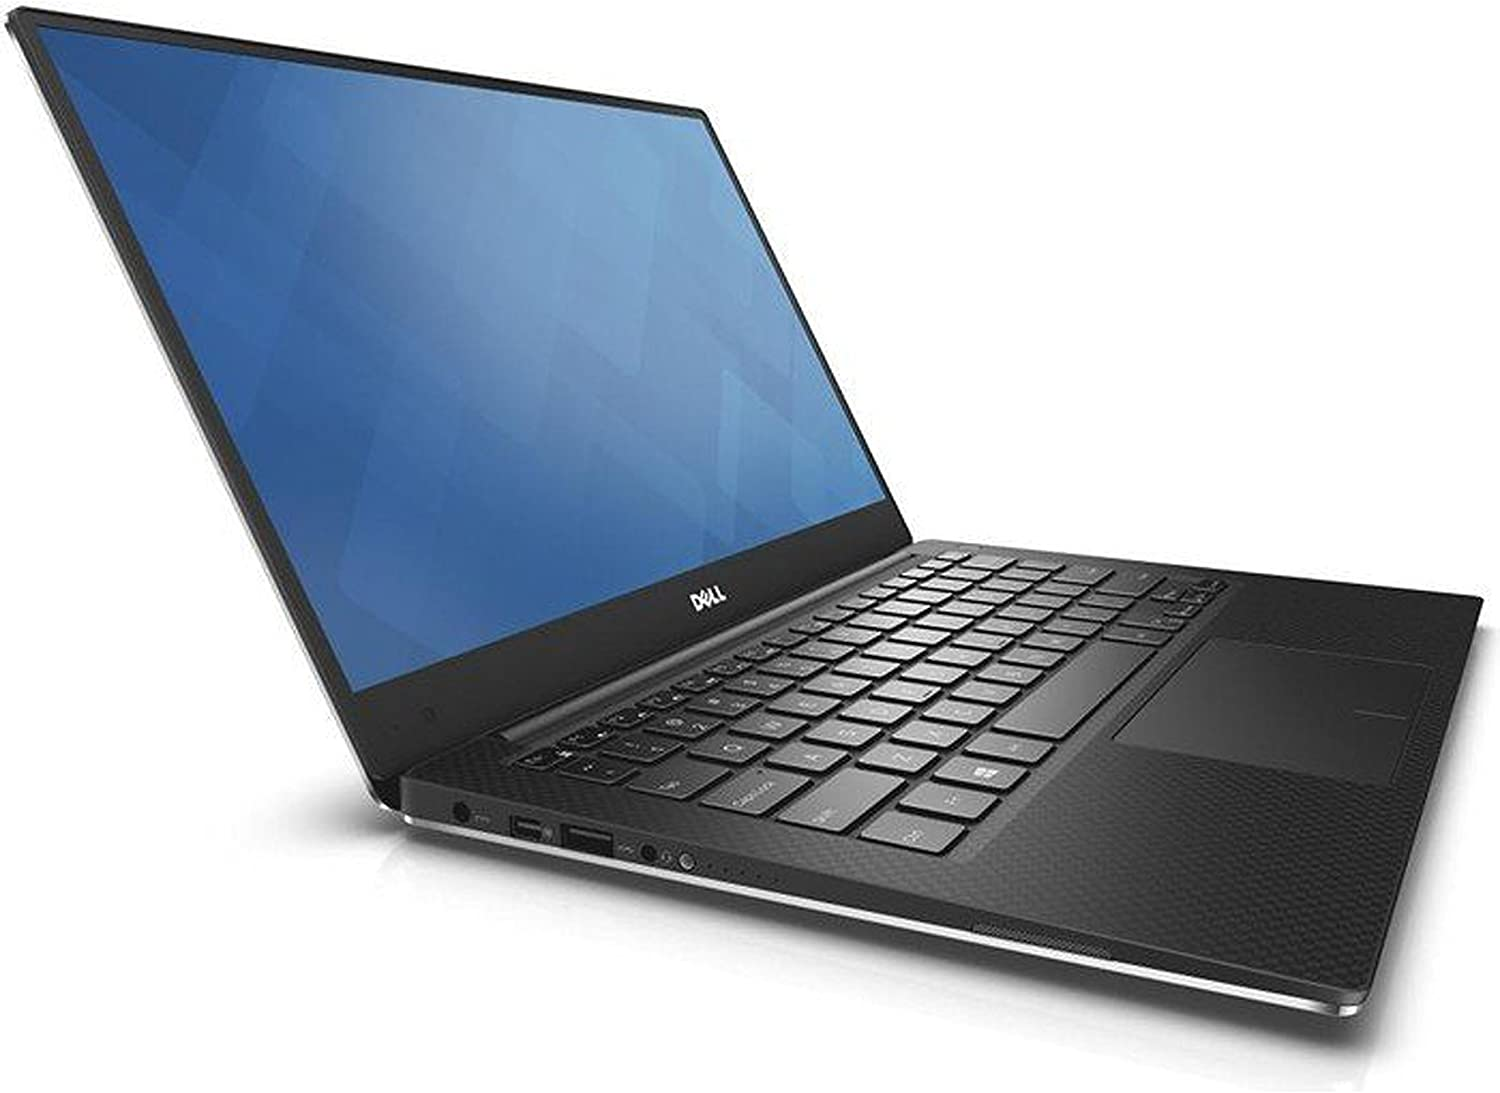 DELL XPS 13 9350 QHD+ 1800P TOUCH I7-6560U 3.2GHZ 8GB RAM 256GB PCIE SSD Backlit Keyboard WIN 10 (Renewed)